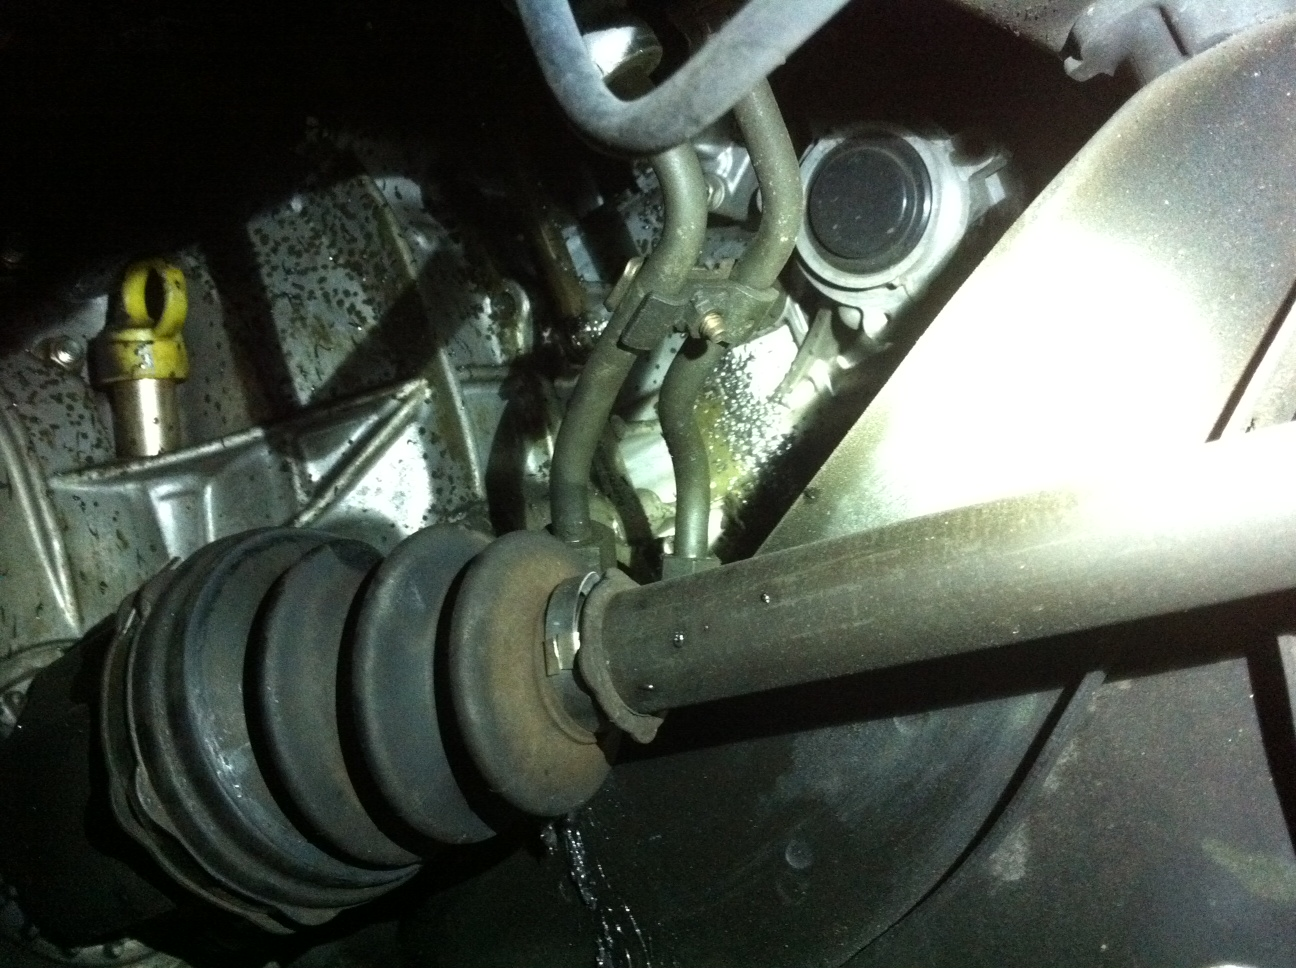 Passenger side grease leak, Axle recently replaced-photo-70-.jpg